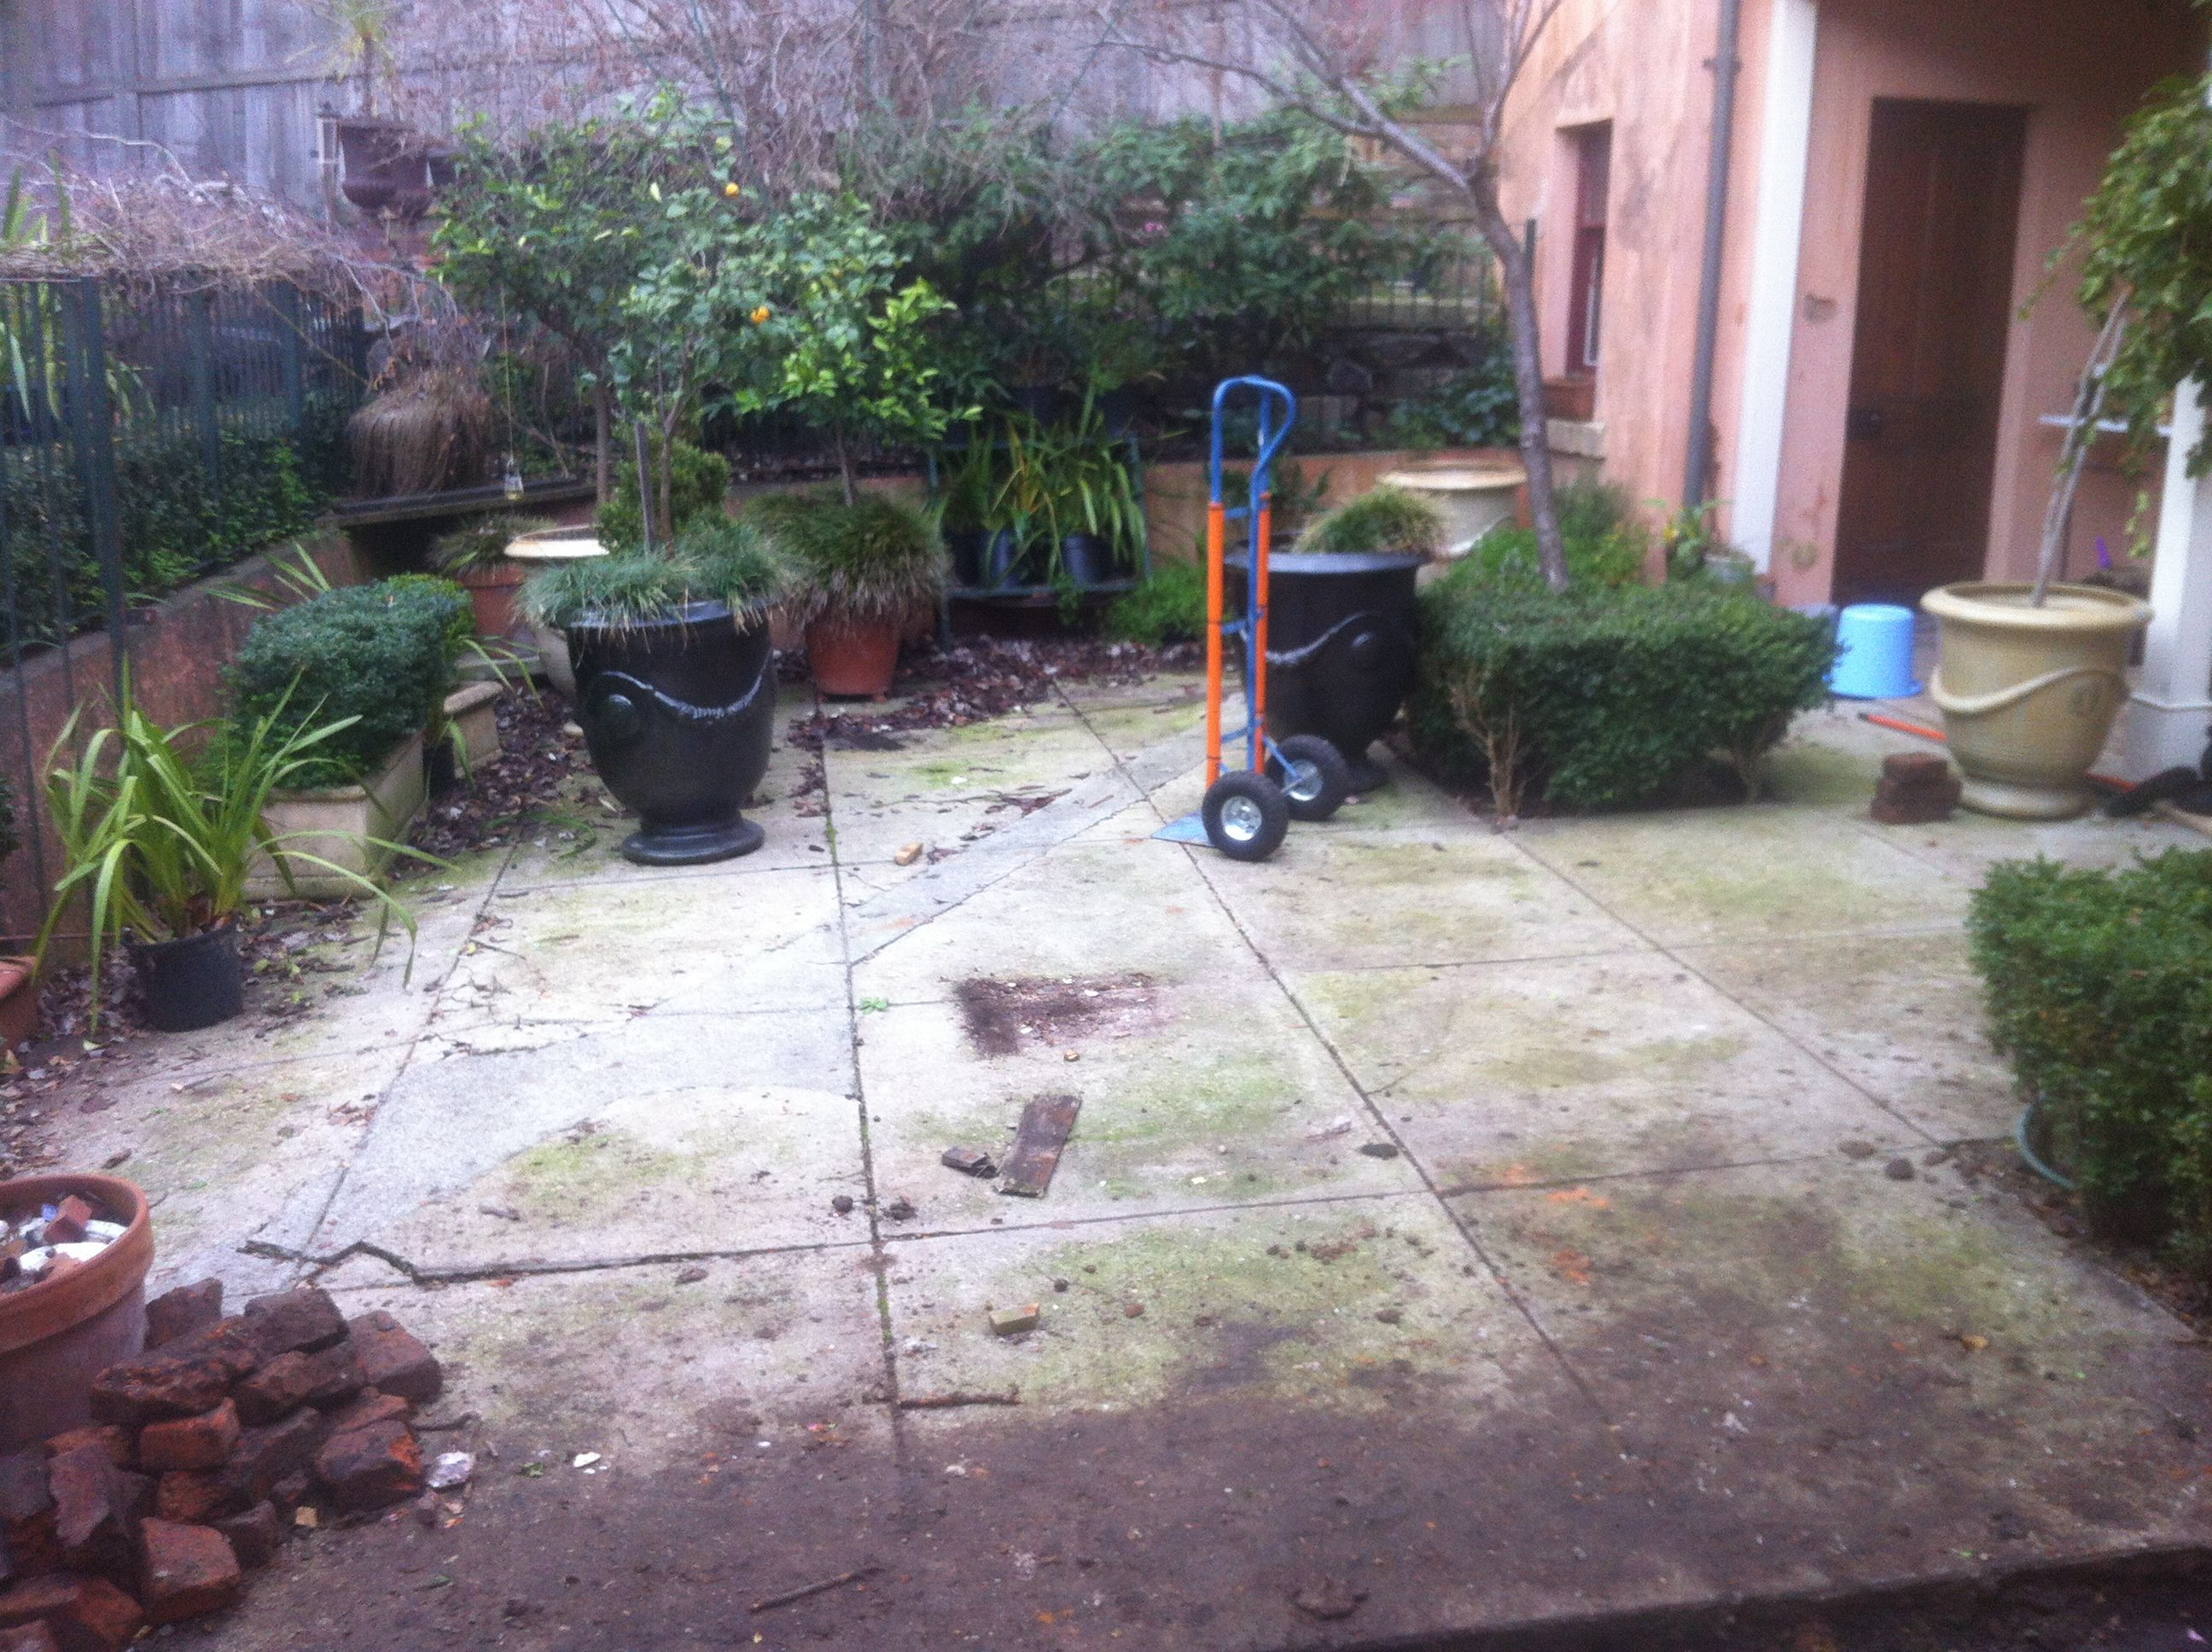 The courtyard about to undergo major sewage works...little did we realise the monster that was to be revealed August 2013